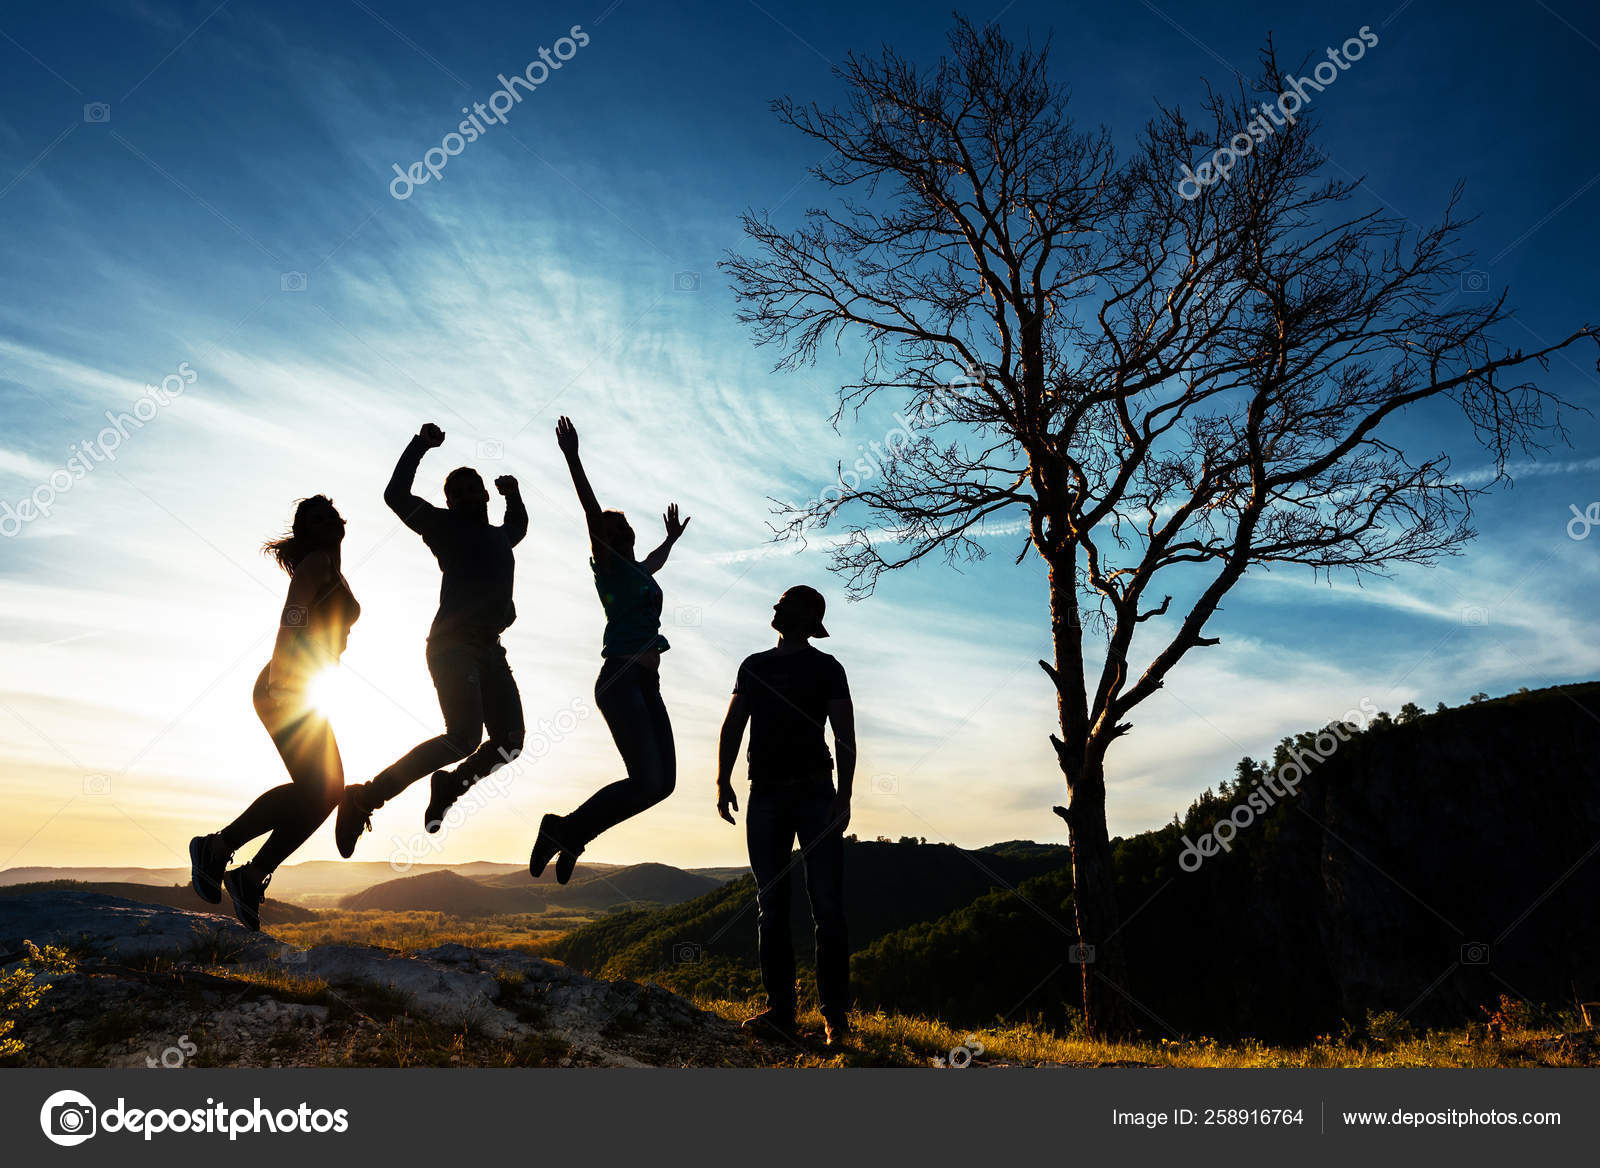 Silhouette Of People People In Jump Friends Have Fun At Sunset Funny Friends Best Friends Friends Traveling Group Of People At Sunset People Have Fun At Sunset Travelers At Sunset Stock